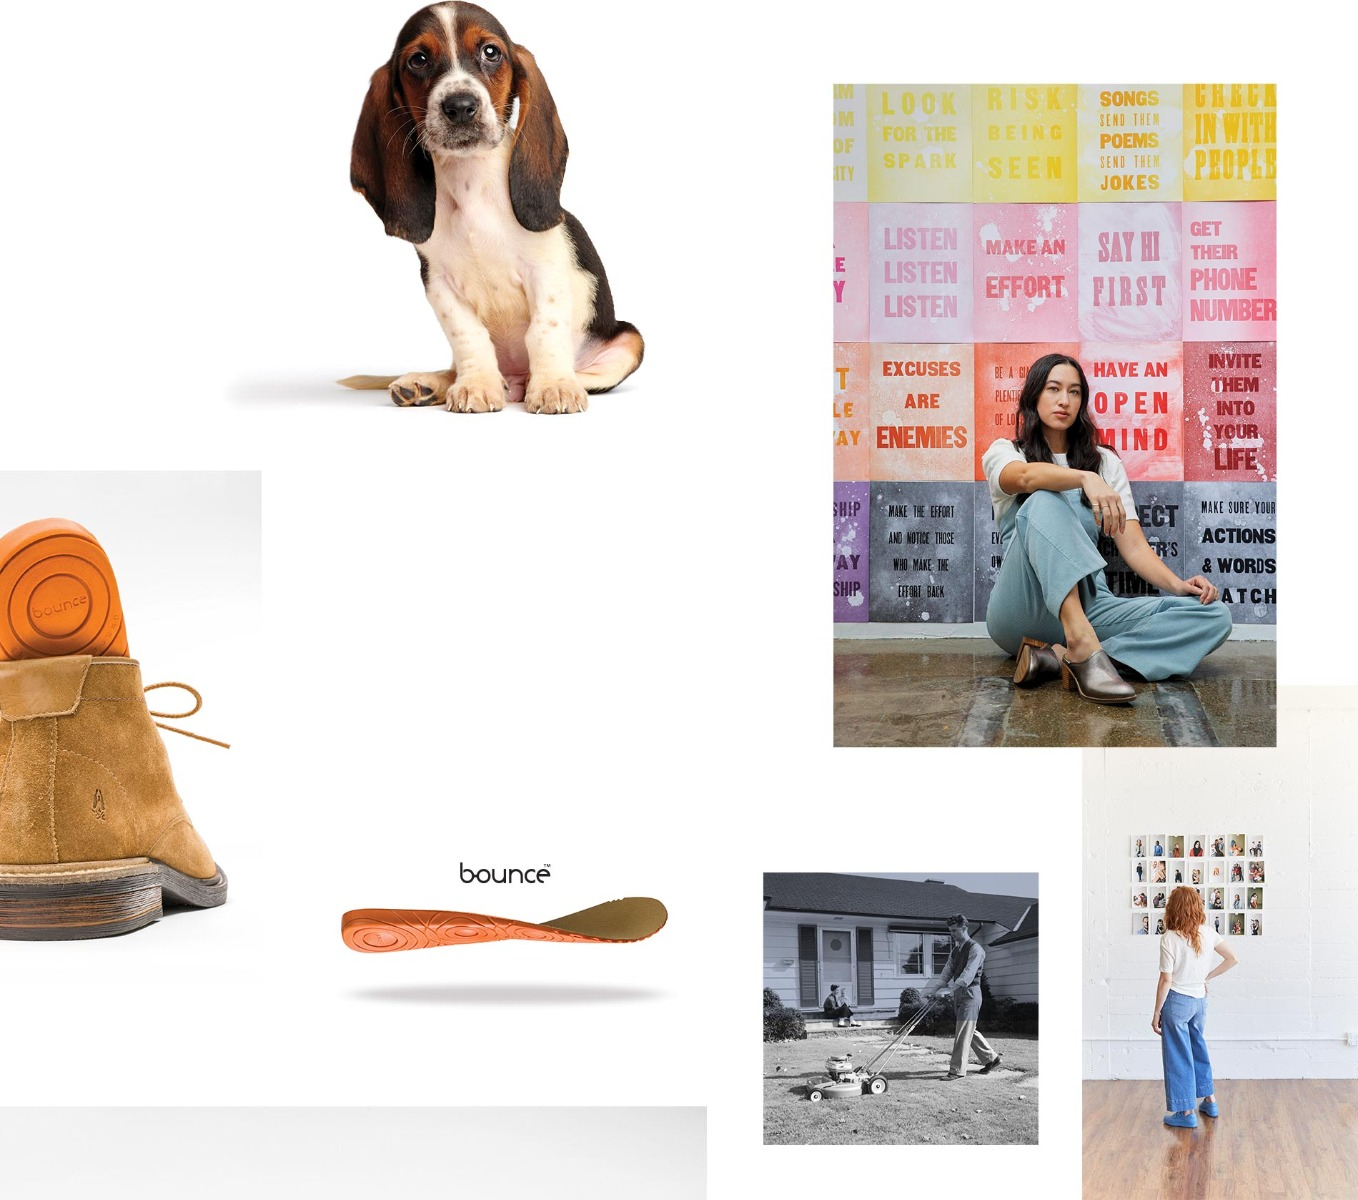 A Basset Hound puppy  adorably looking back at you. Female sitting in front of an inspirational wall of signs. Bounce technology shown through shoe insert.